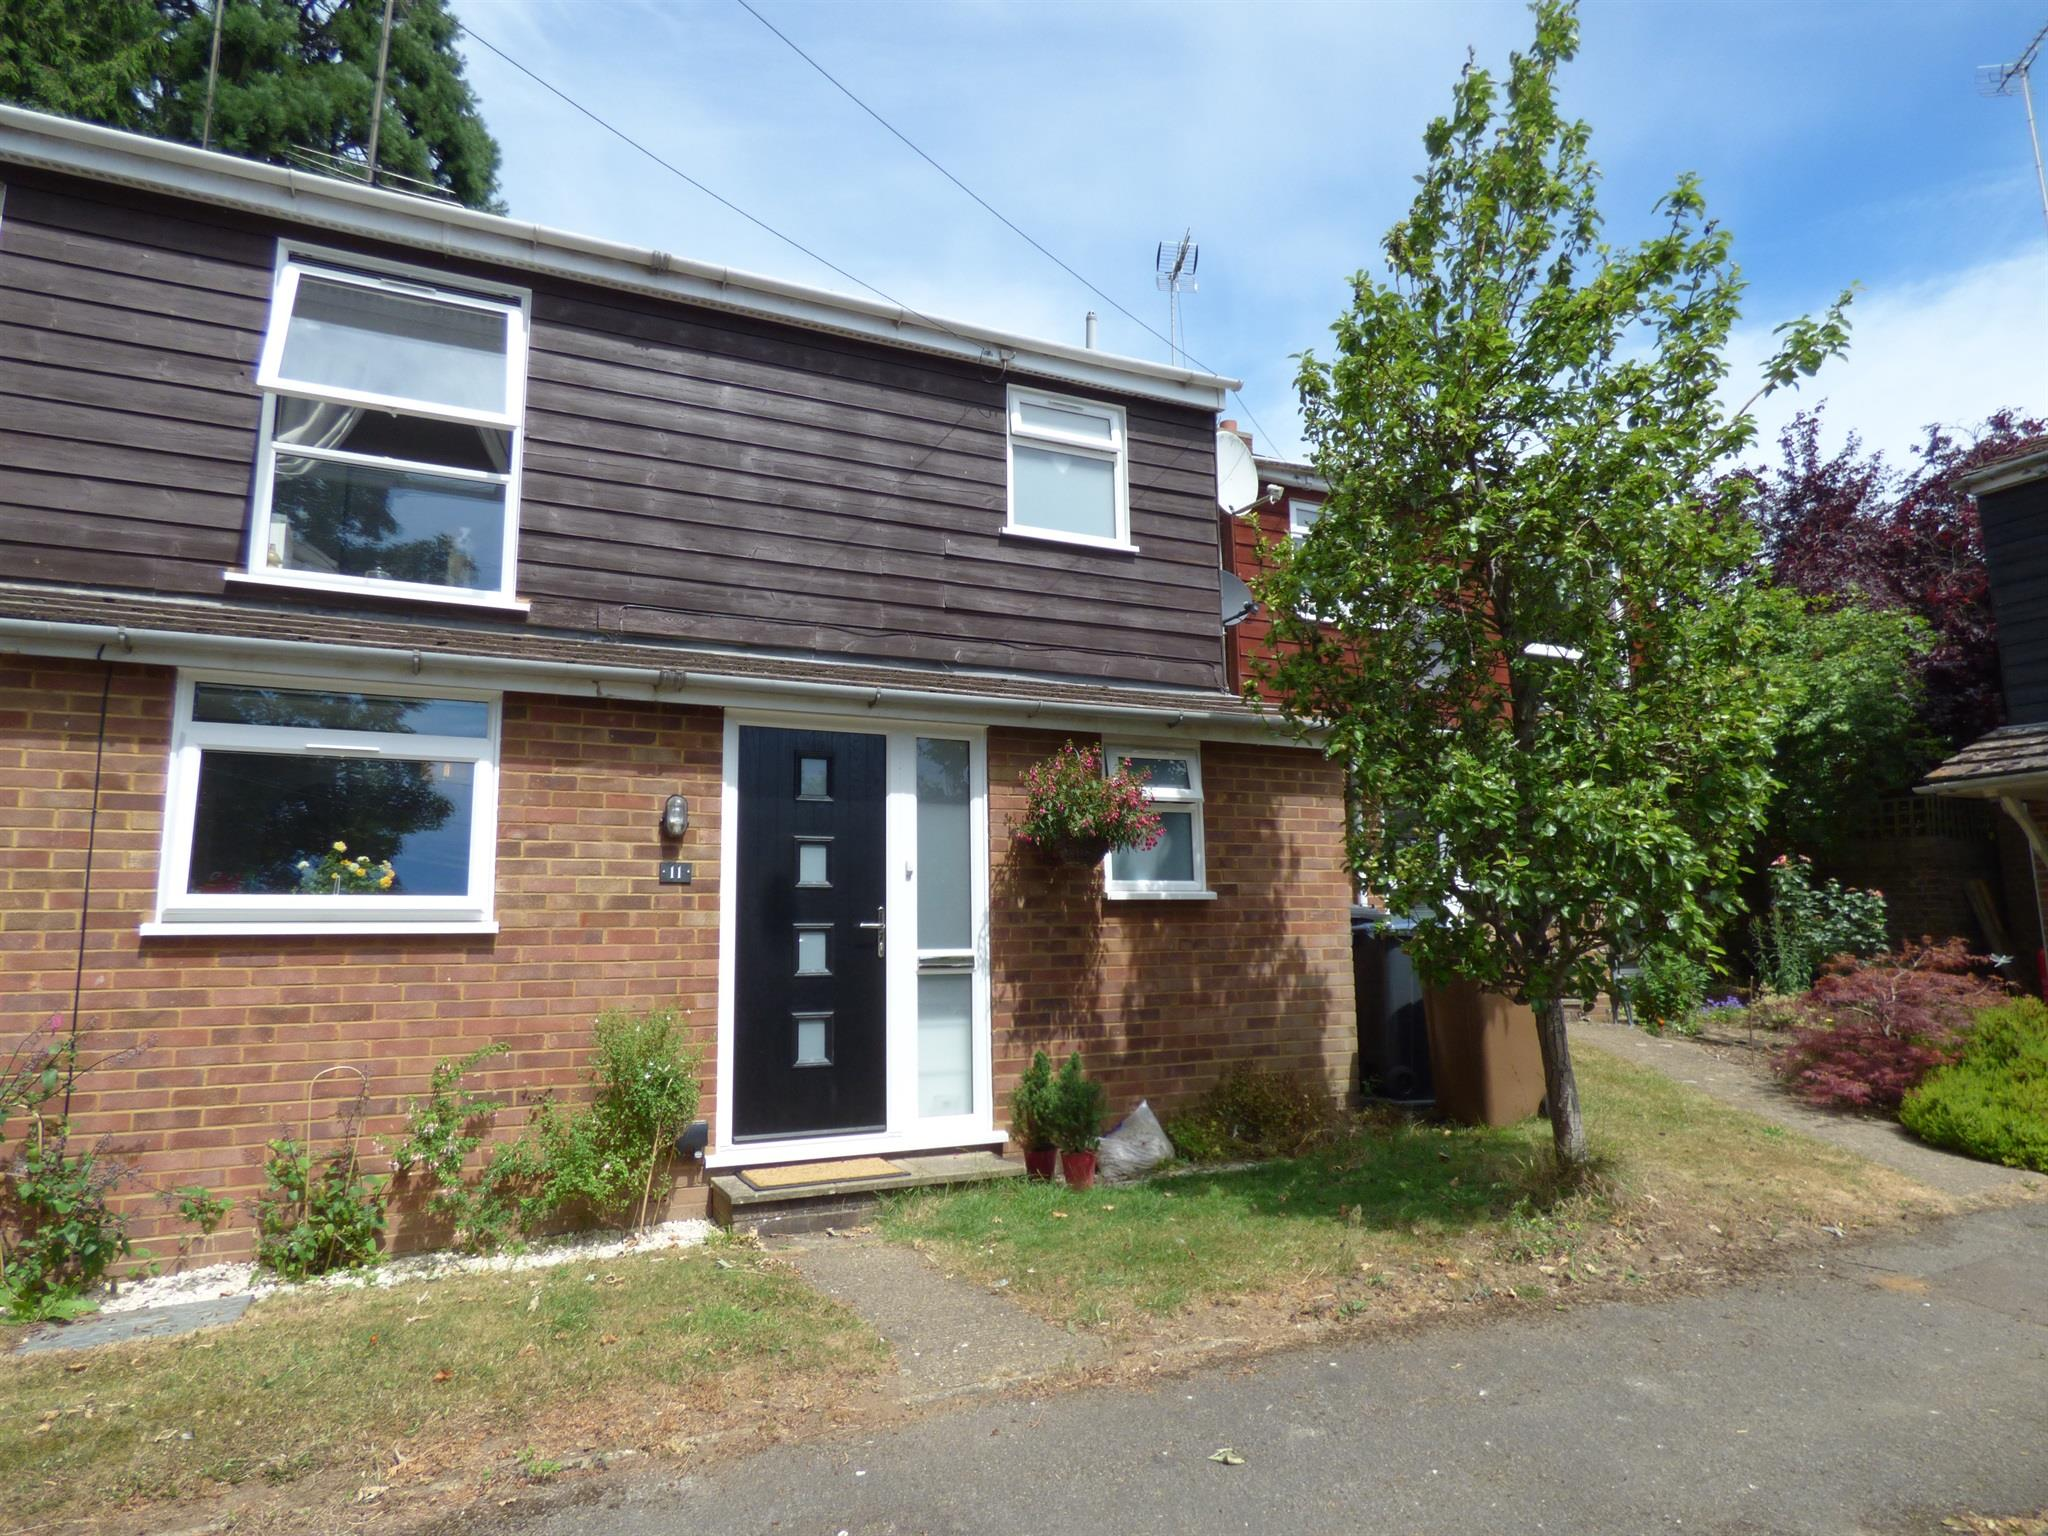 3 Bedroom Semi Detached House For Sale Kennedy Road Ware